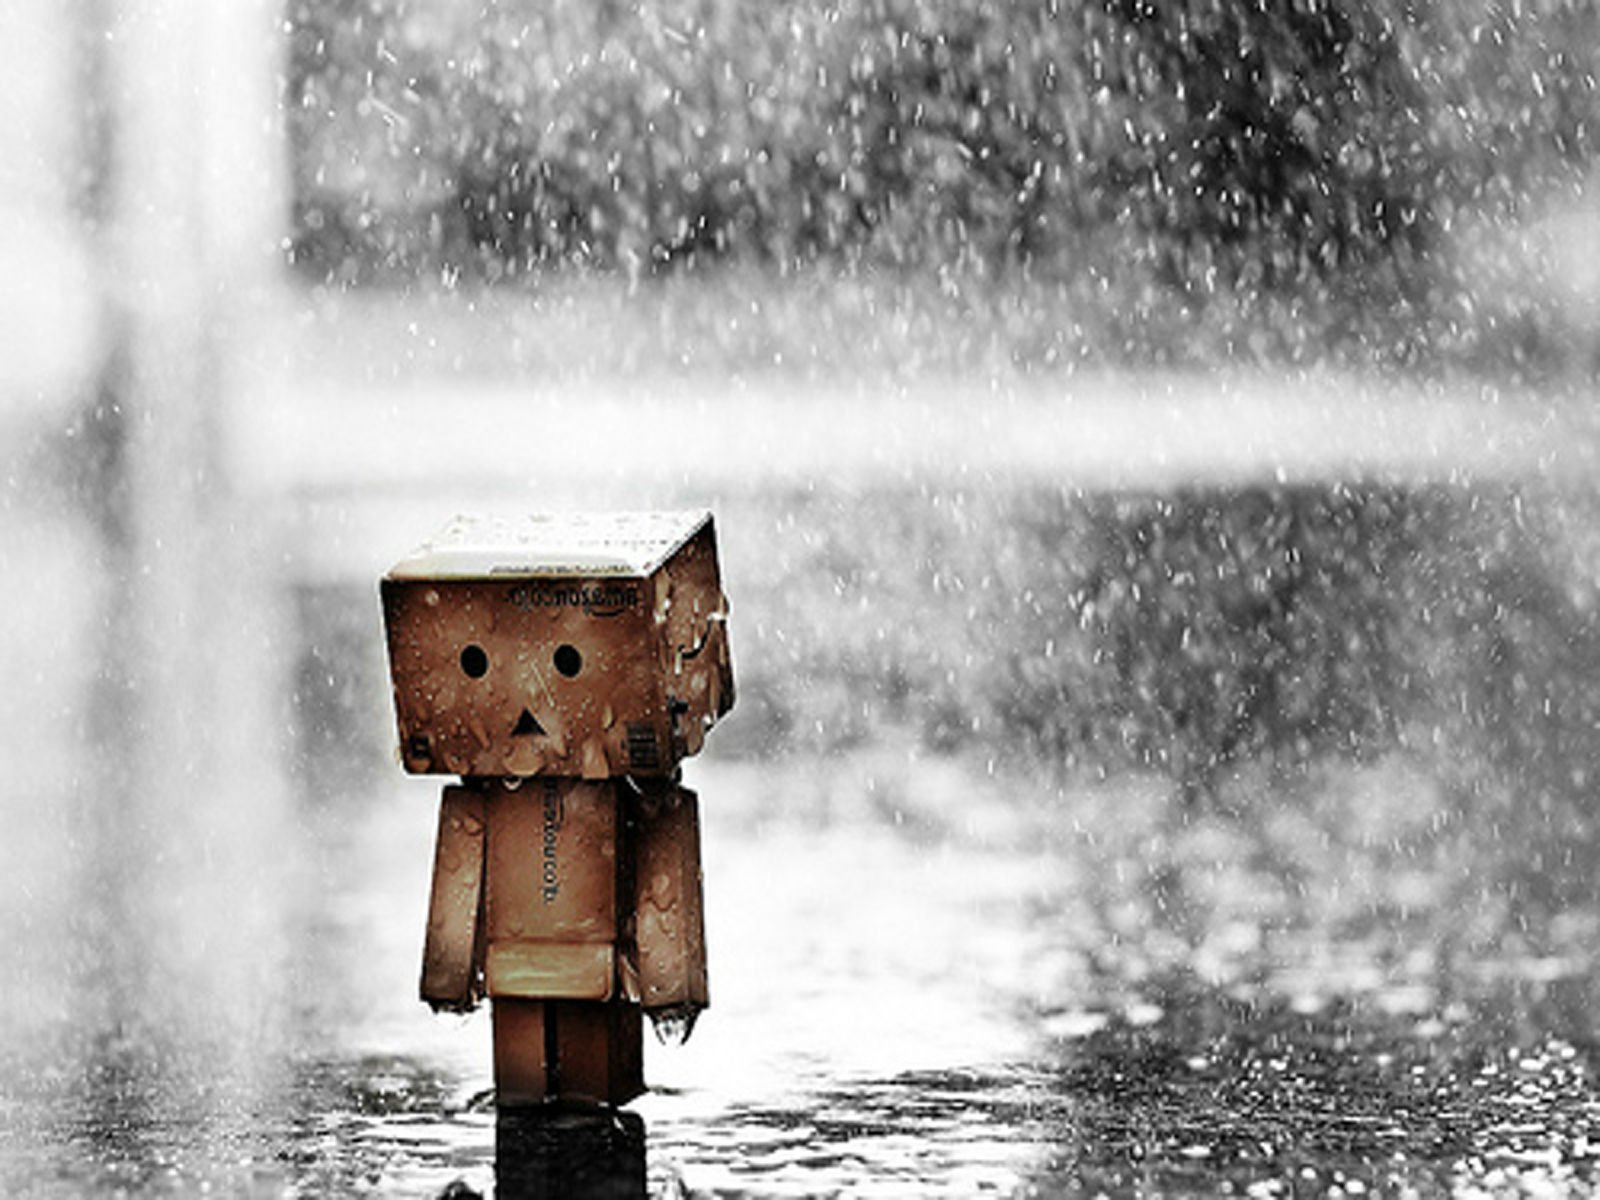 Sad mood sorrow dark people love danbo rain drops wallpaper